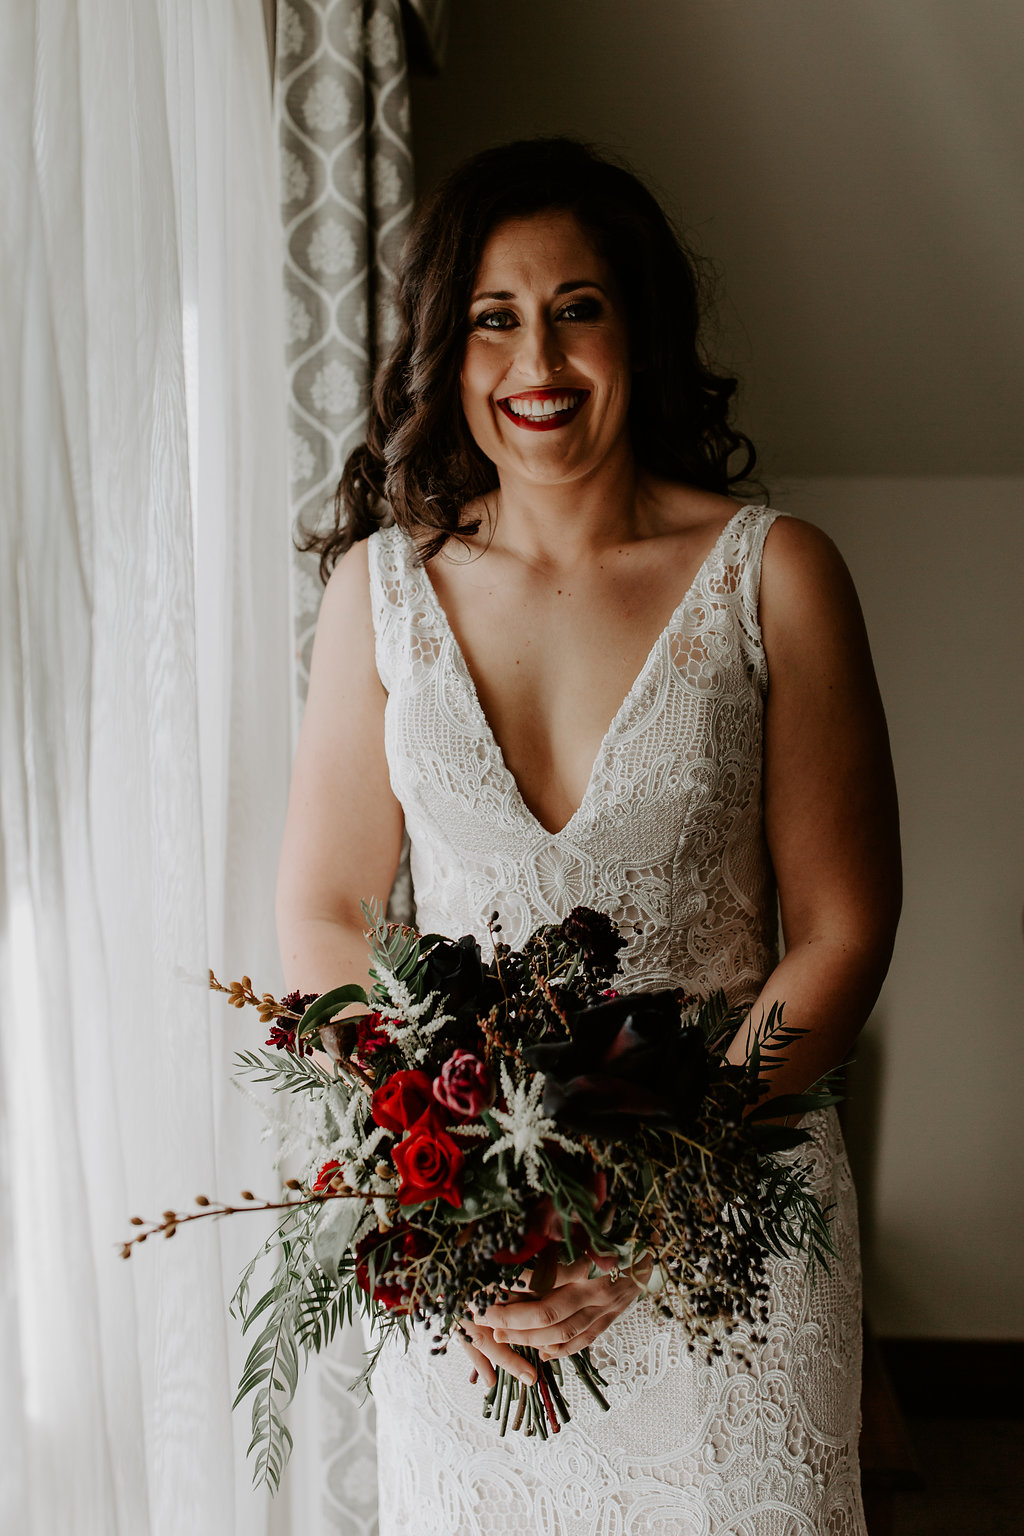 Romantic bridal bouquet in red and black tones